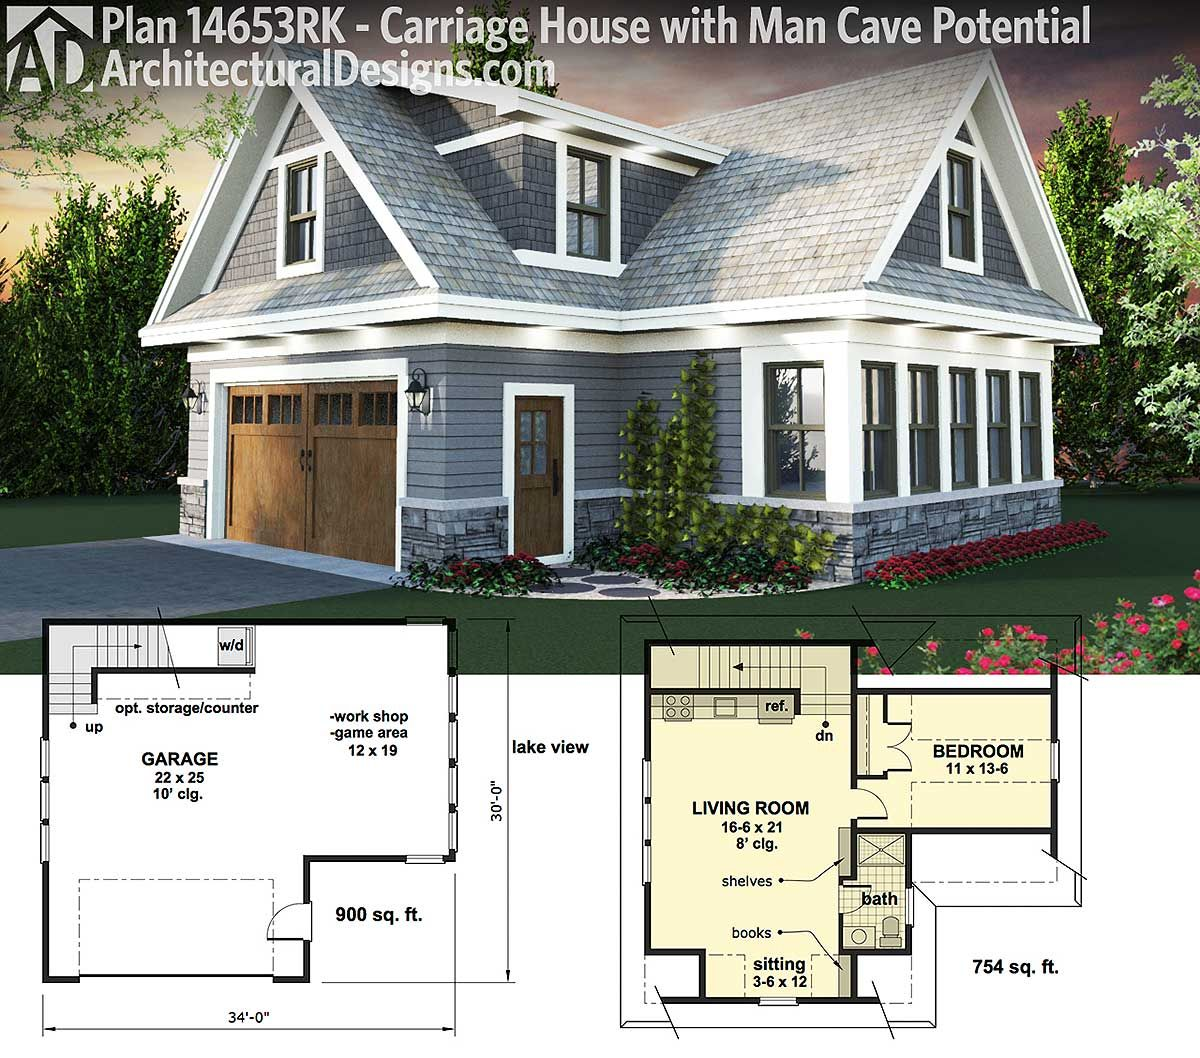 Plan 14653rk carriage house plan with man cave potential for Coach house garage prices